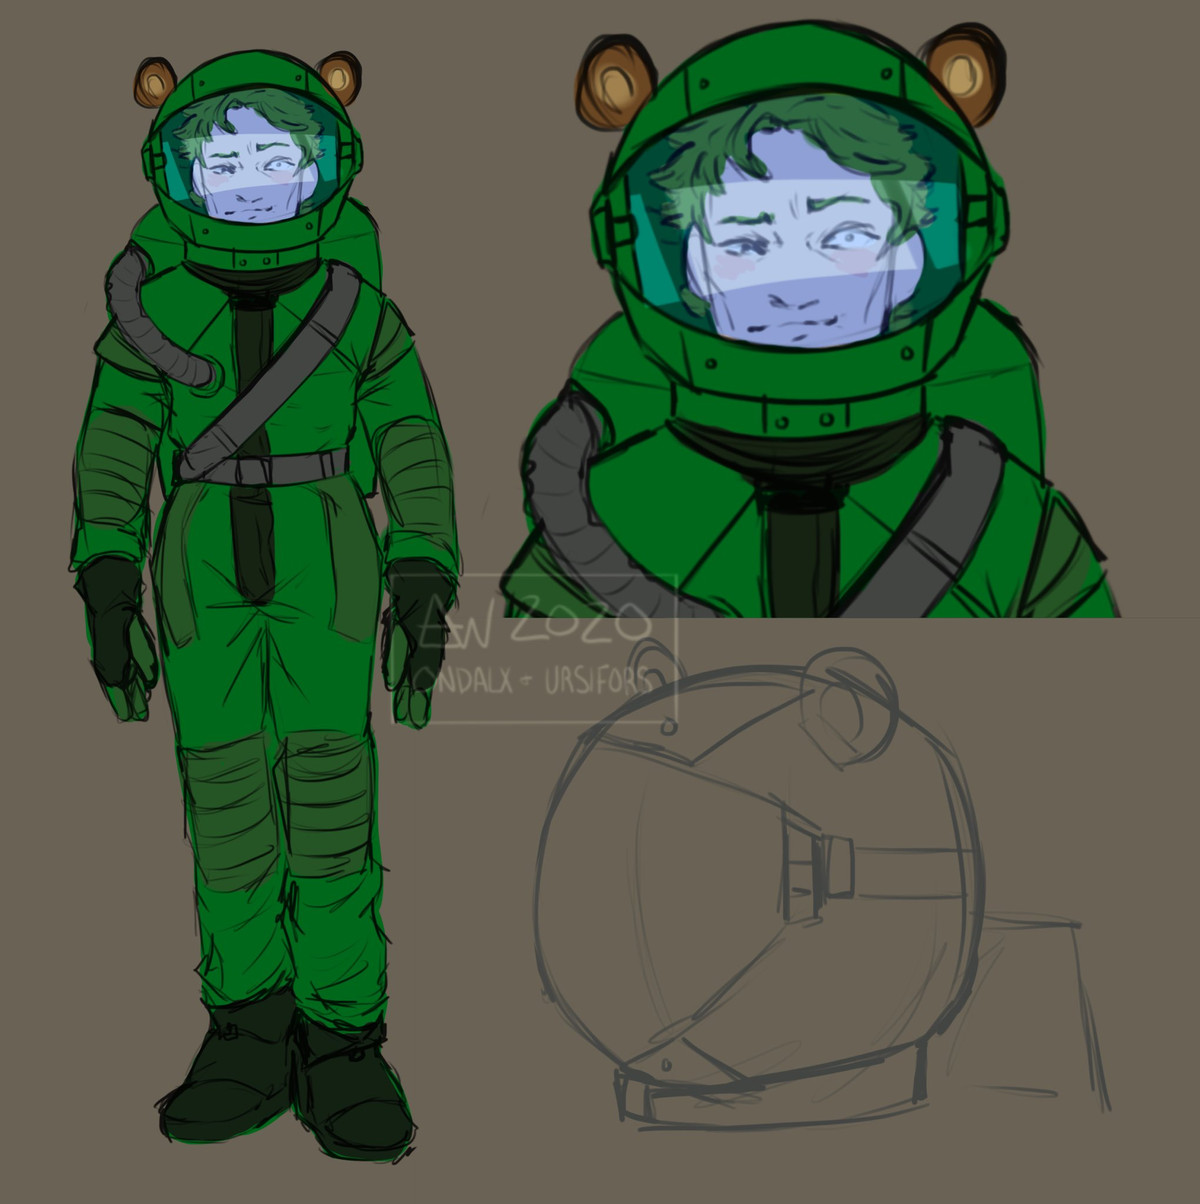 A player-drawn Among Us crewsona showing a dark green crewmate with bear ears on his helmet